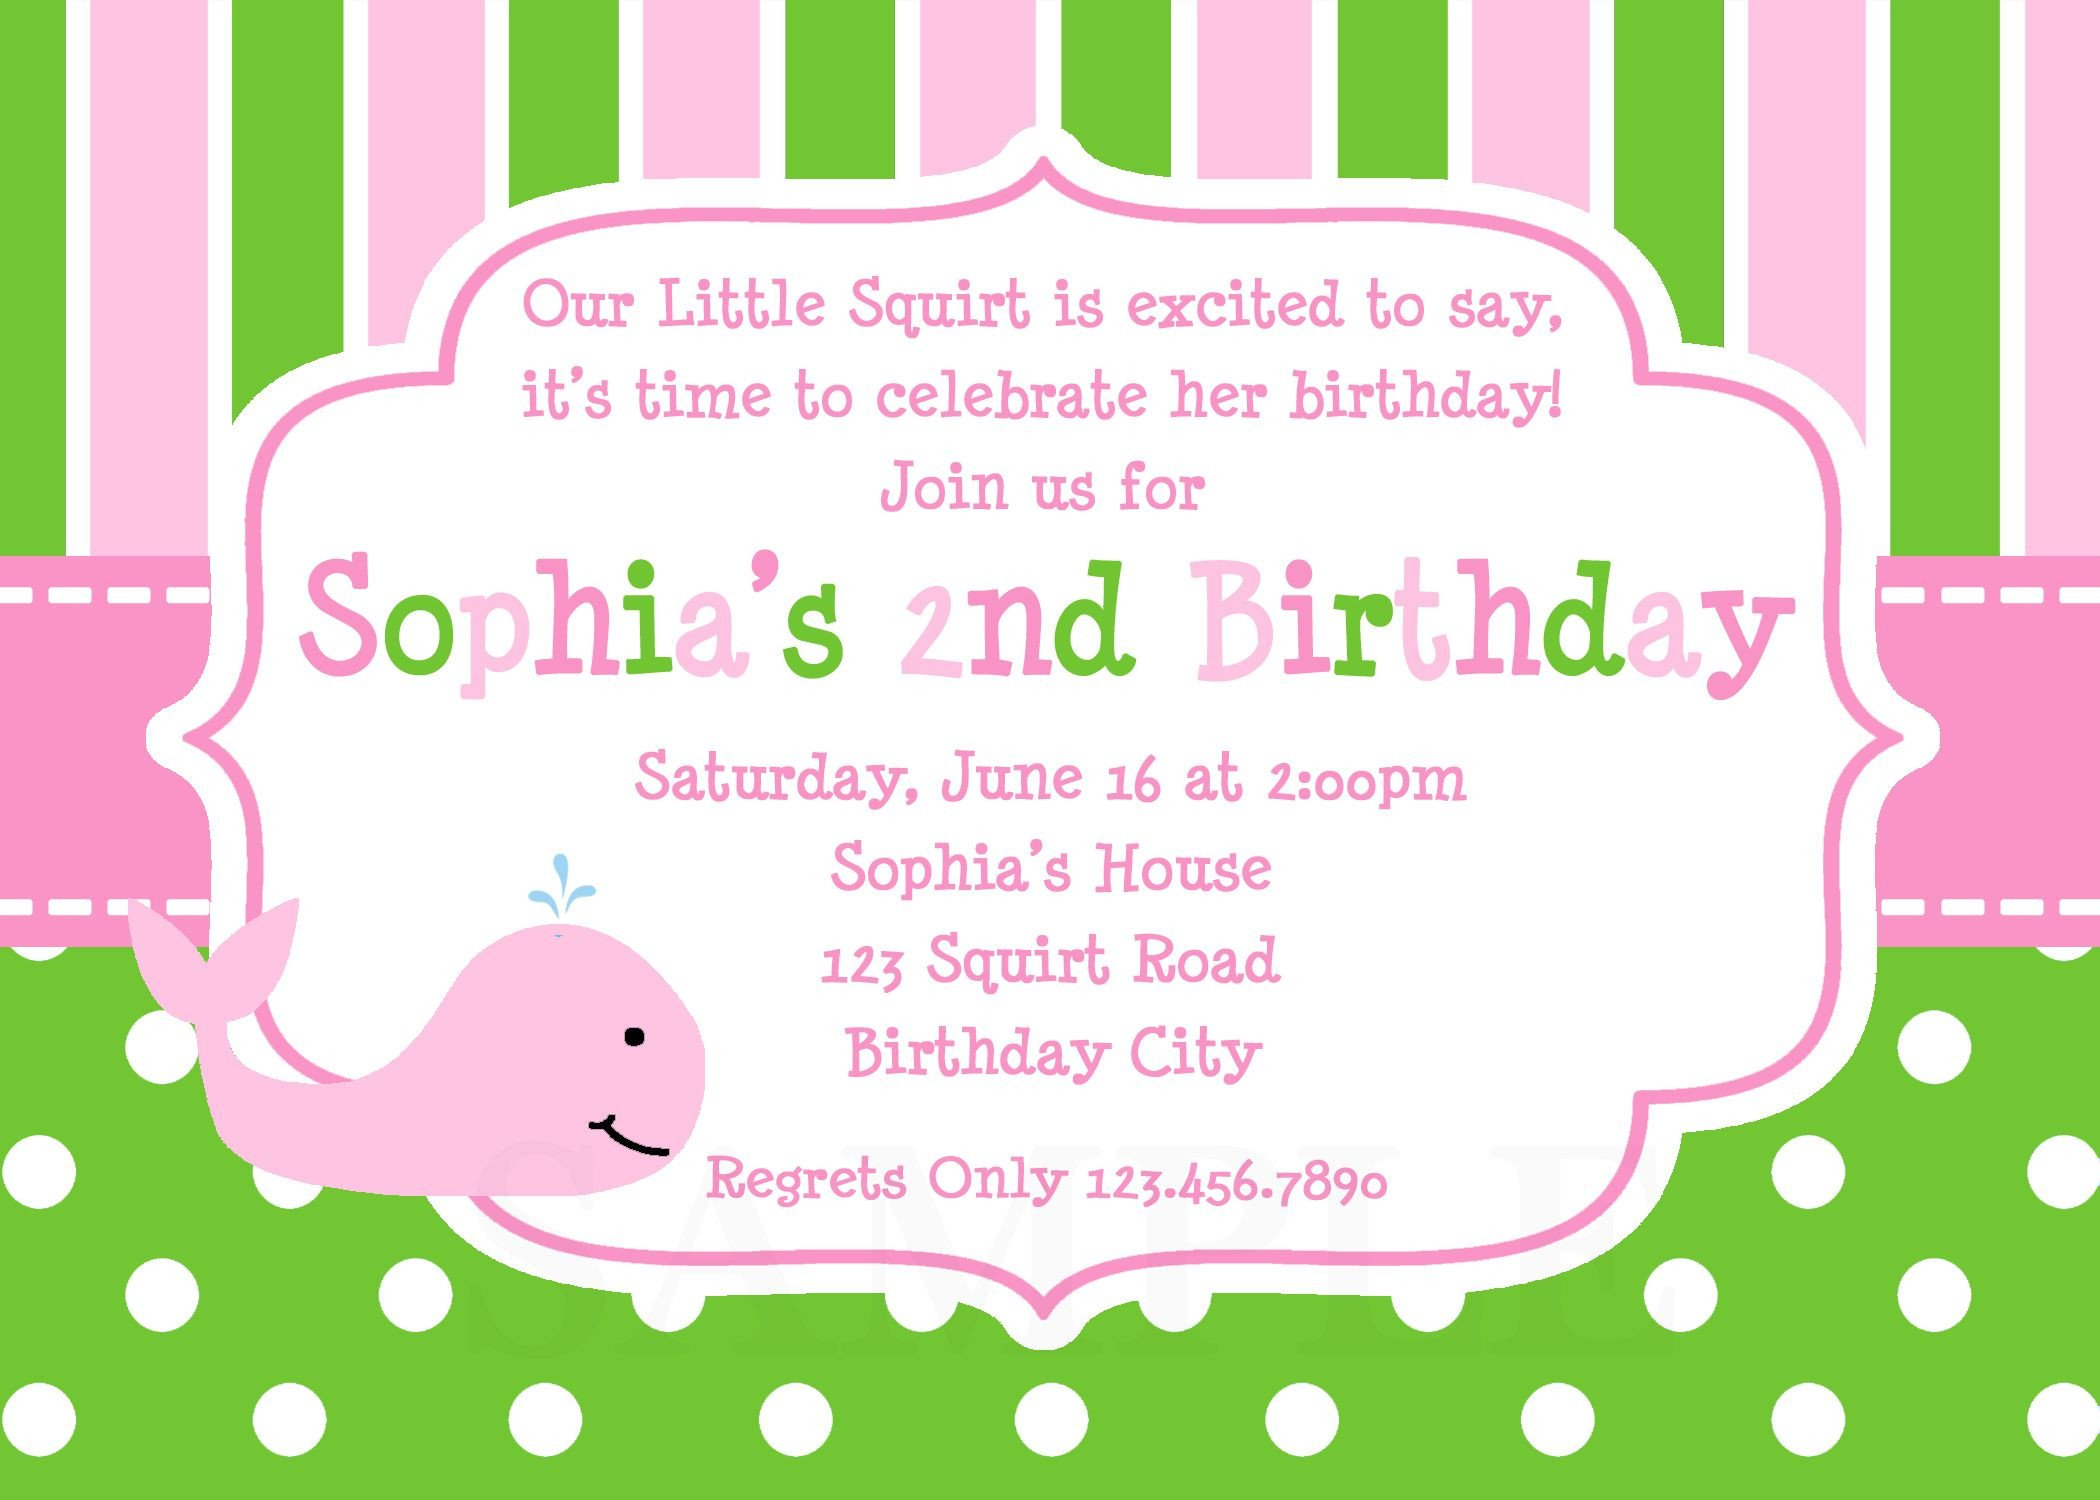 Kids Birthday Invitation Template 21 Kids Birthday Invitation Wording that We Can Make